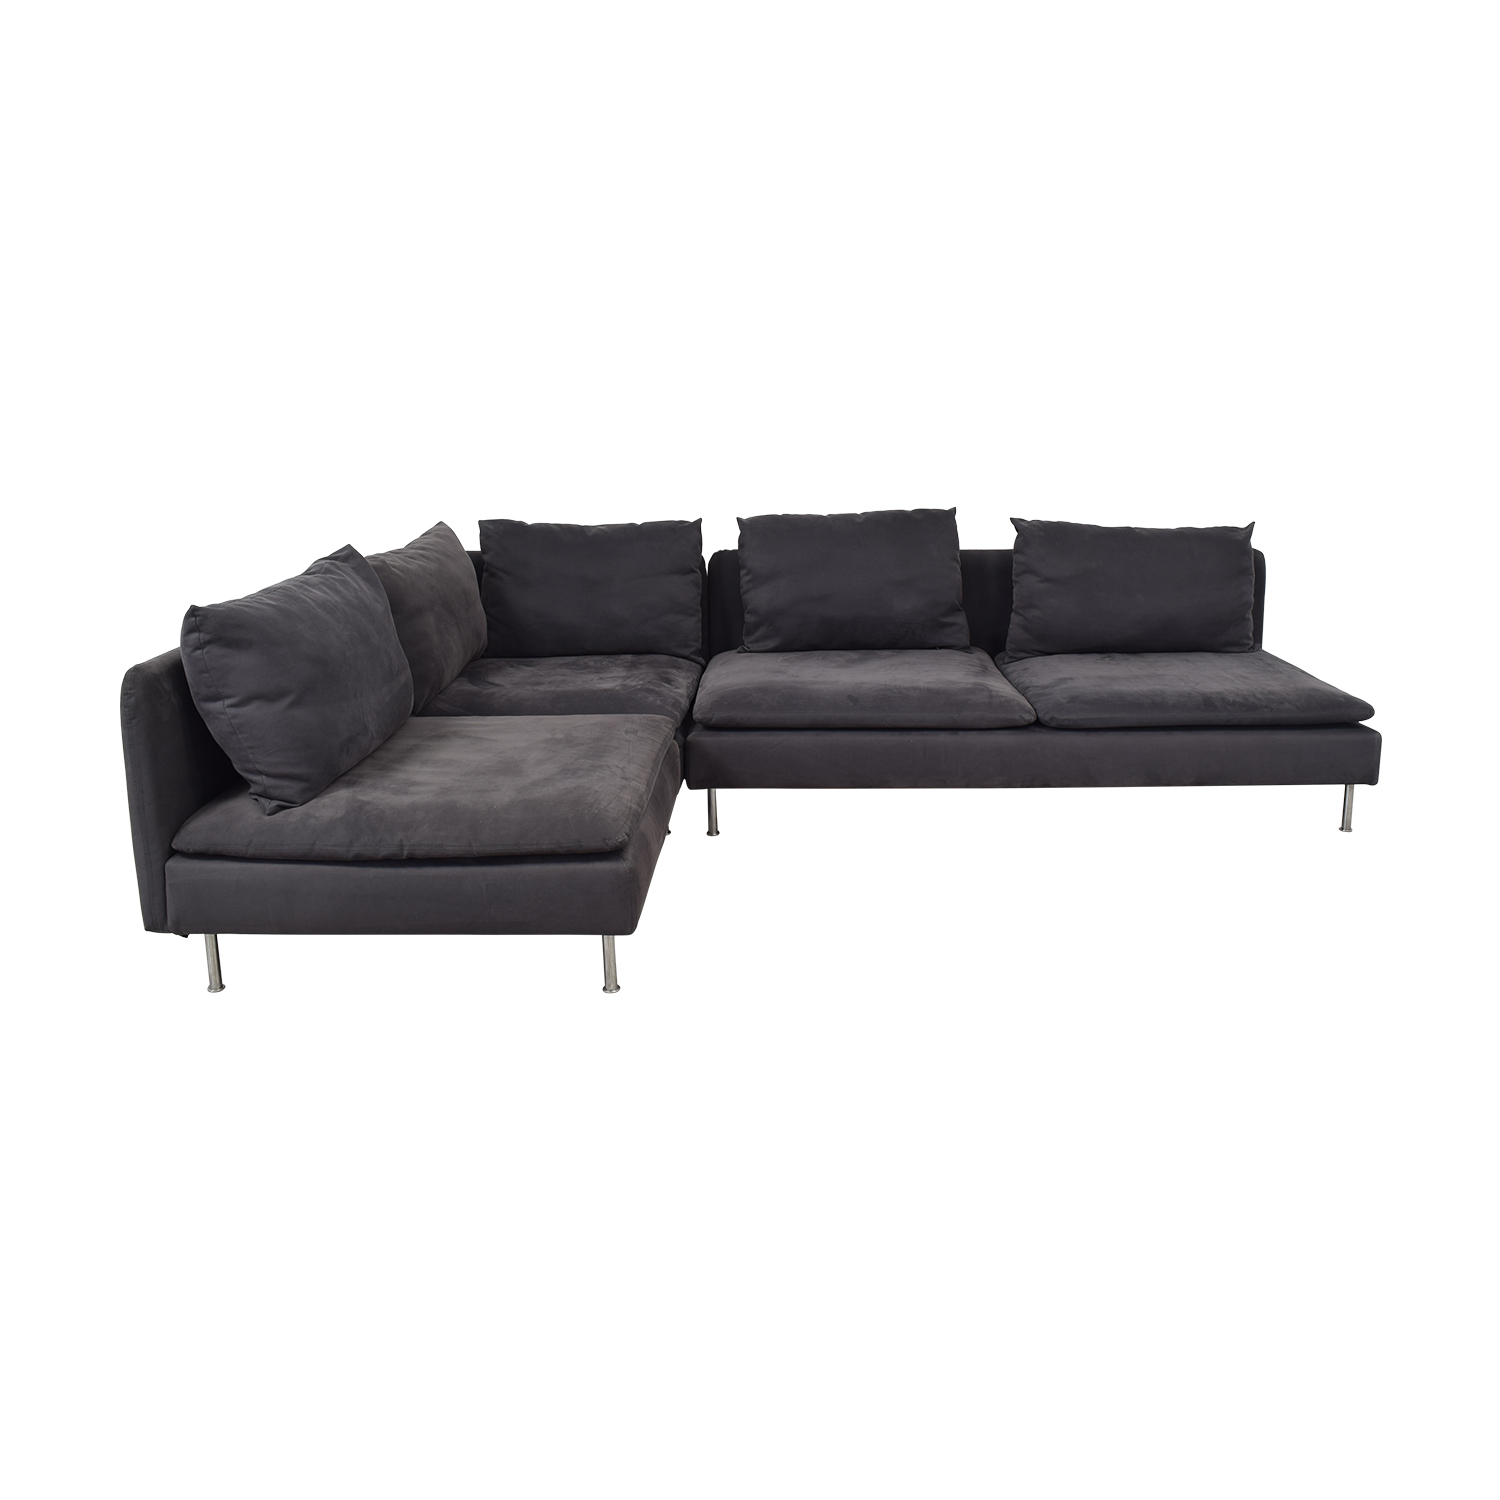 low cost a35d8 bfa9f 57% OFF - IKEA IKEA Soderham Sectional Sofa / Sofas